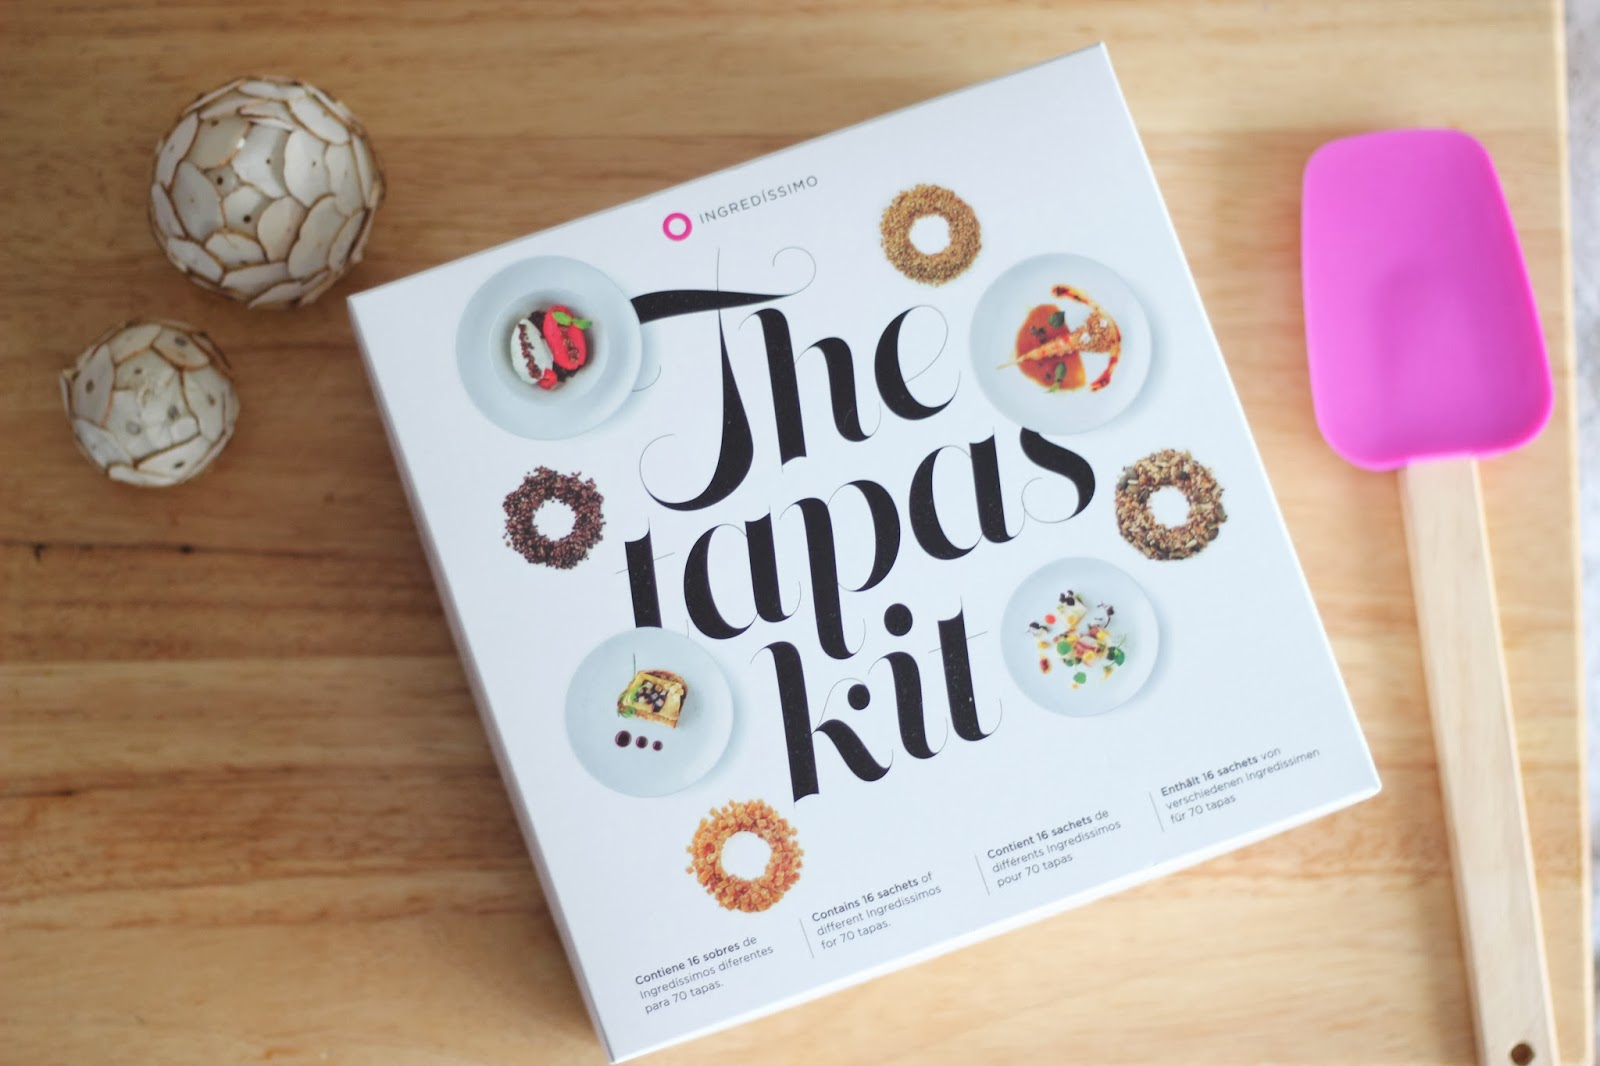 photo-ingredissimo-thetapaskit-recetas